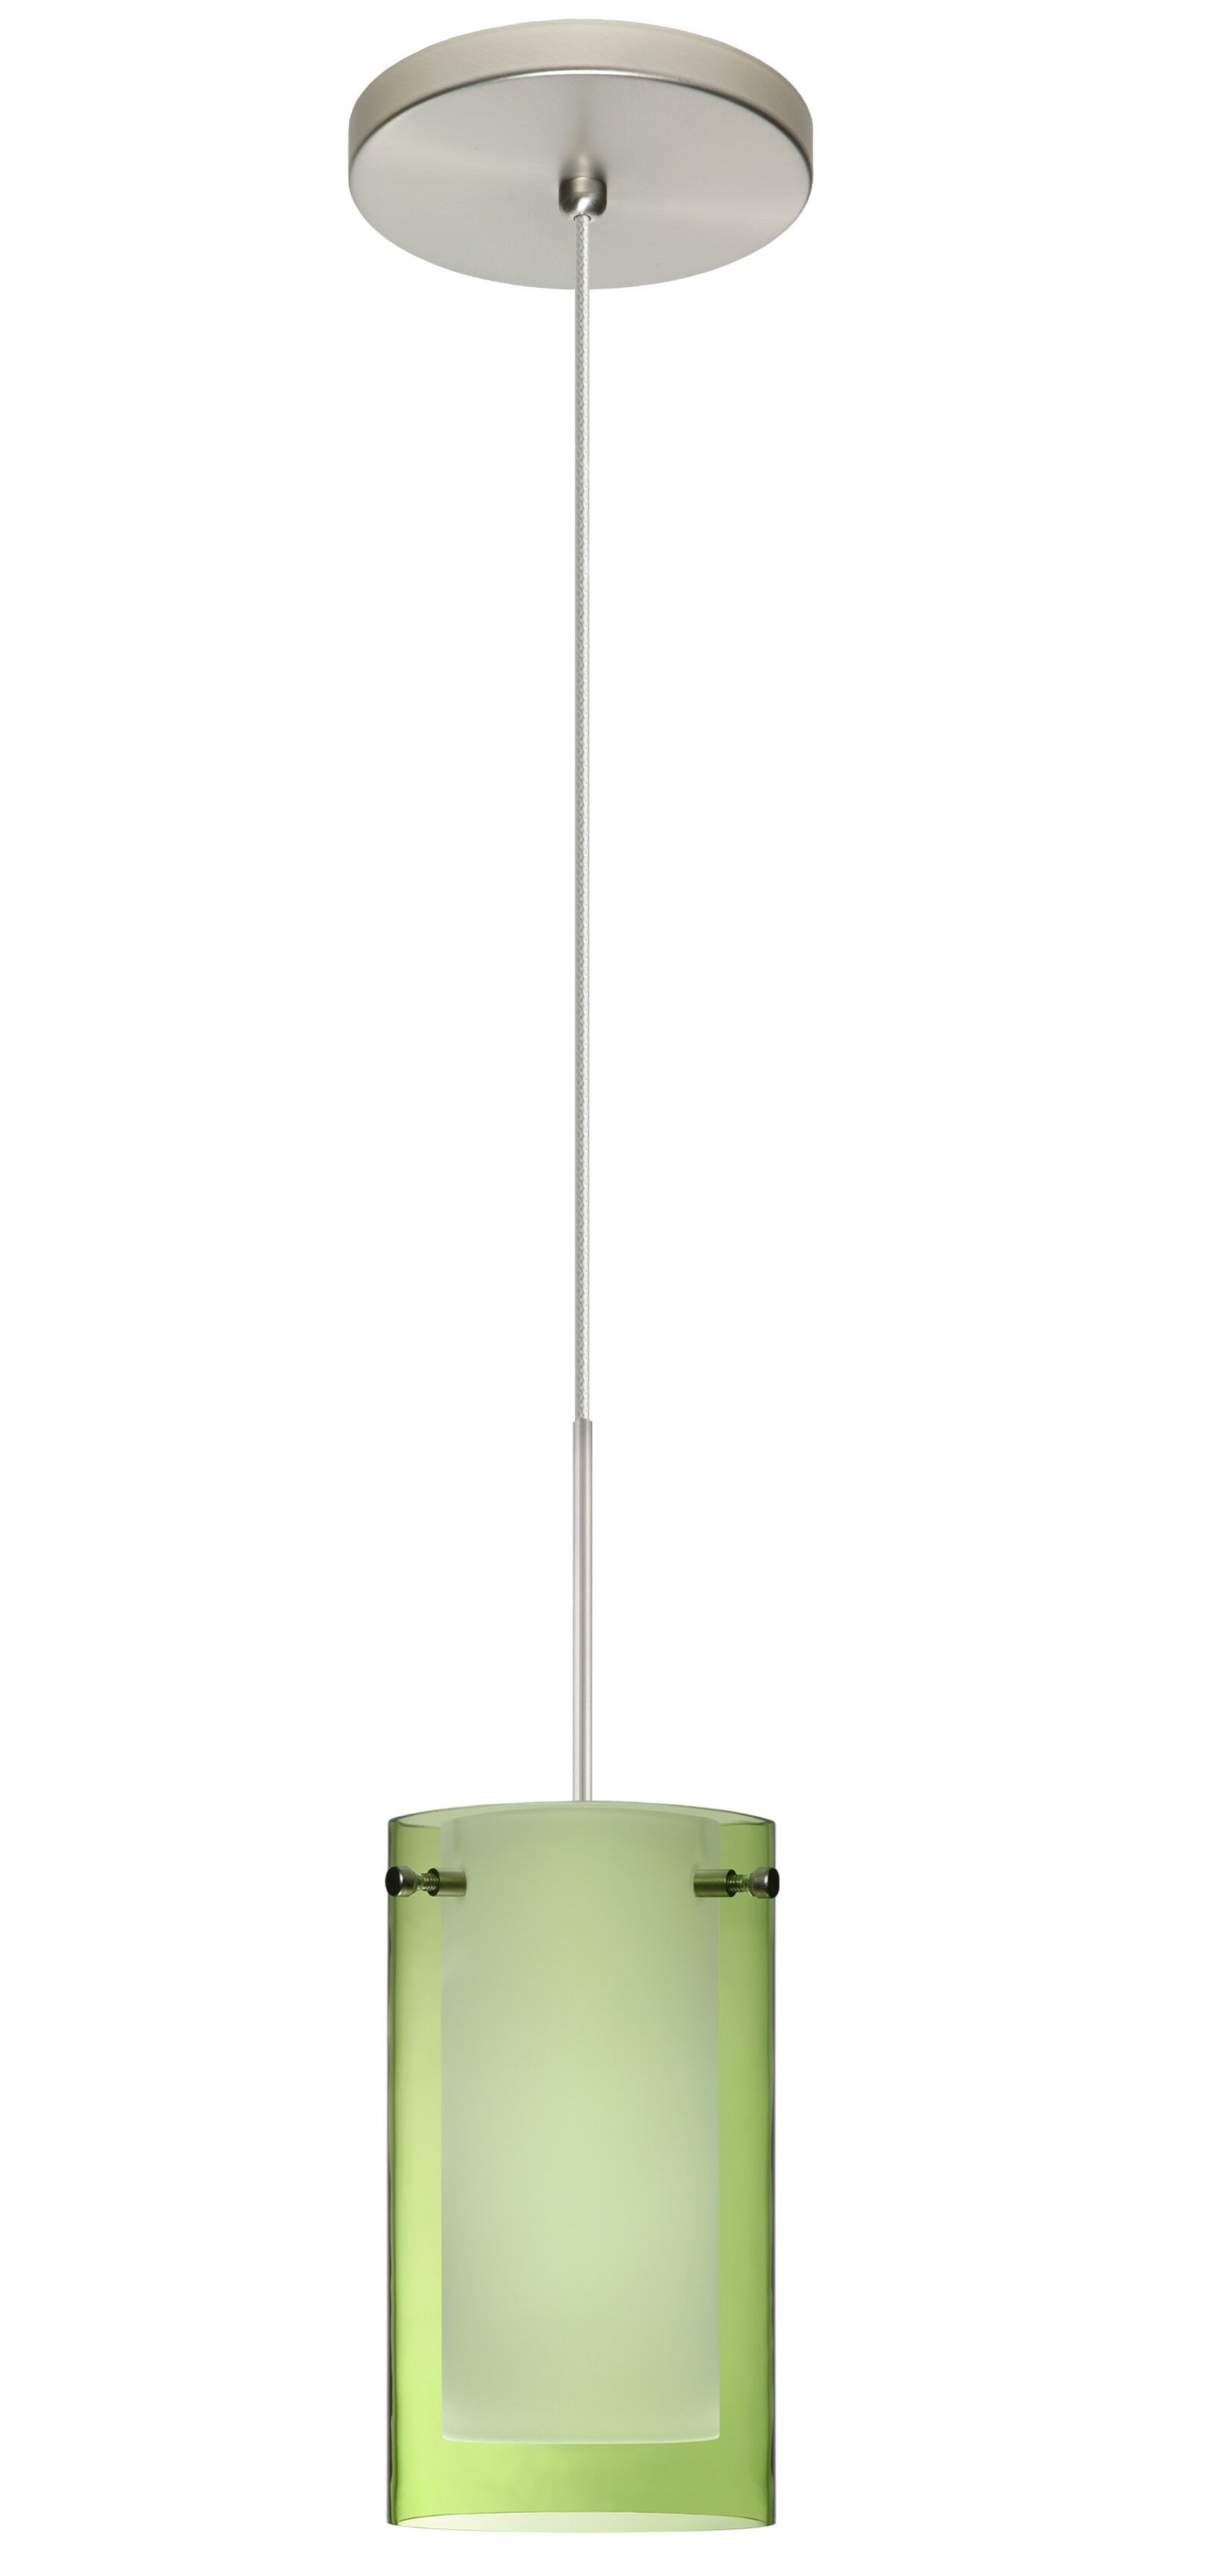 Pahu 1 Integrated Bulb Mini Pendant Shade Color: Transparent Olive/Opal, Bulb Type: LED, Finish: Satin Nickel